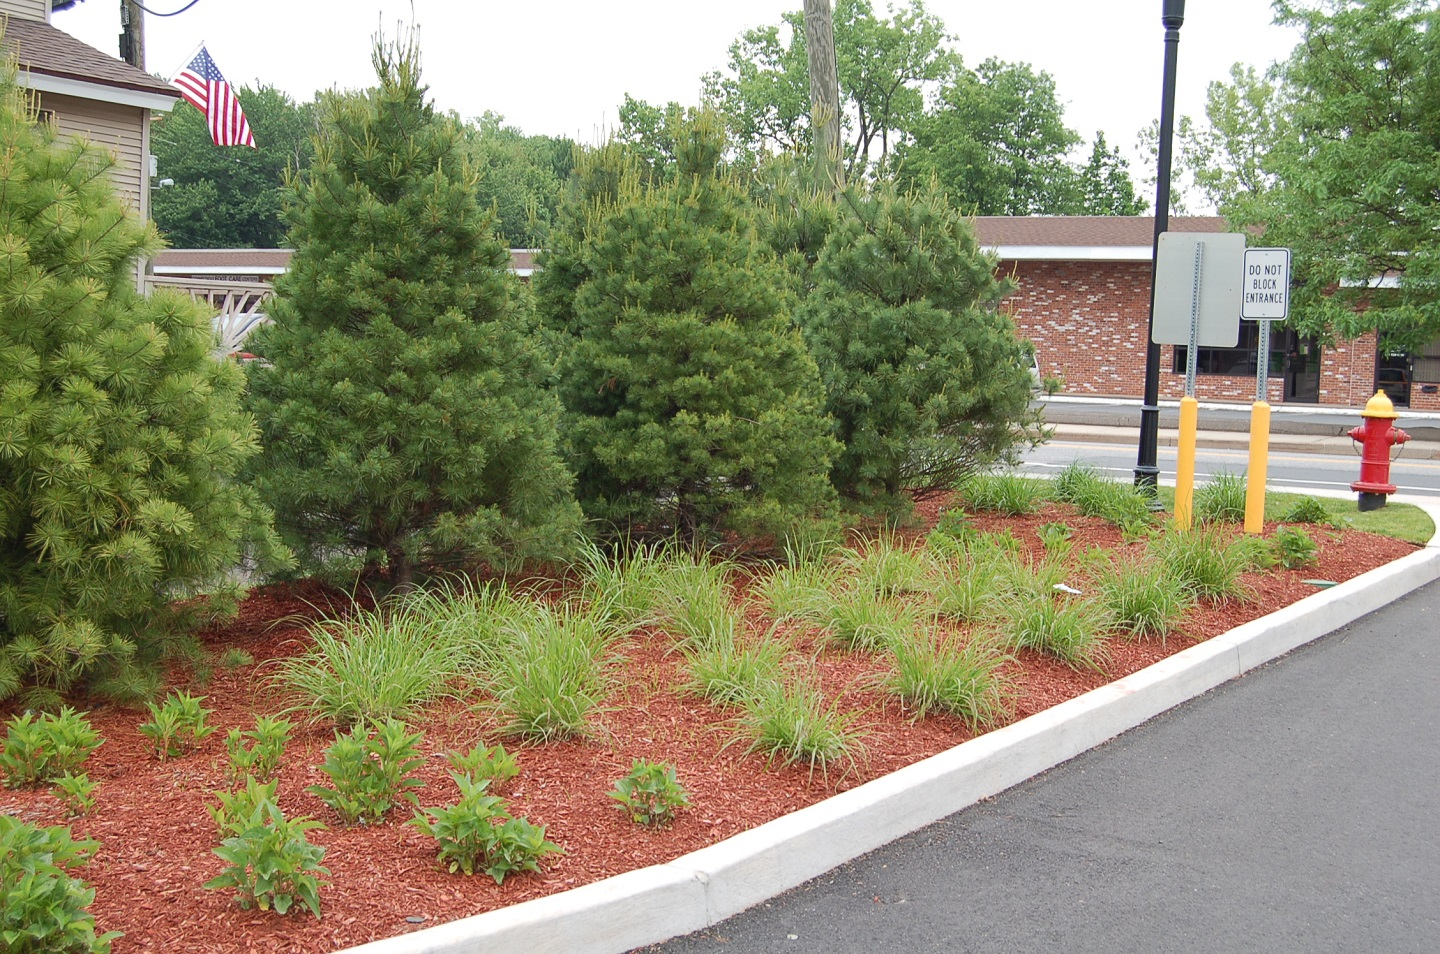 Commercial landscape construction in Newington, CT